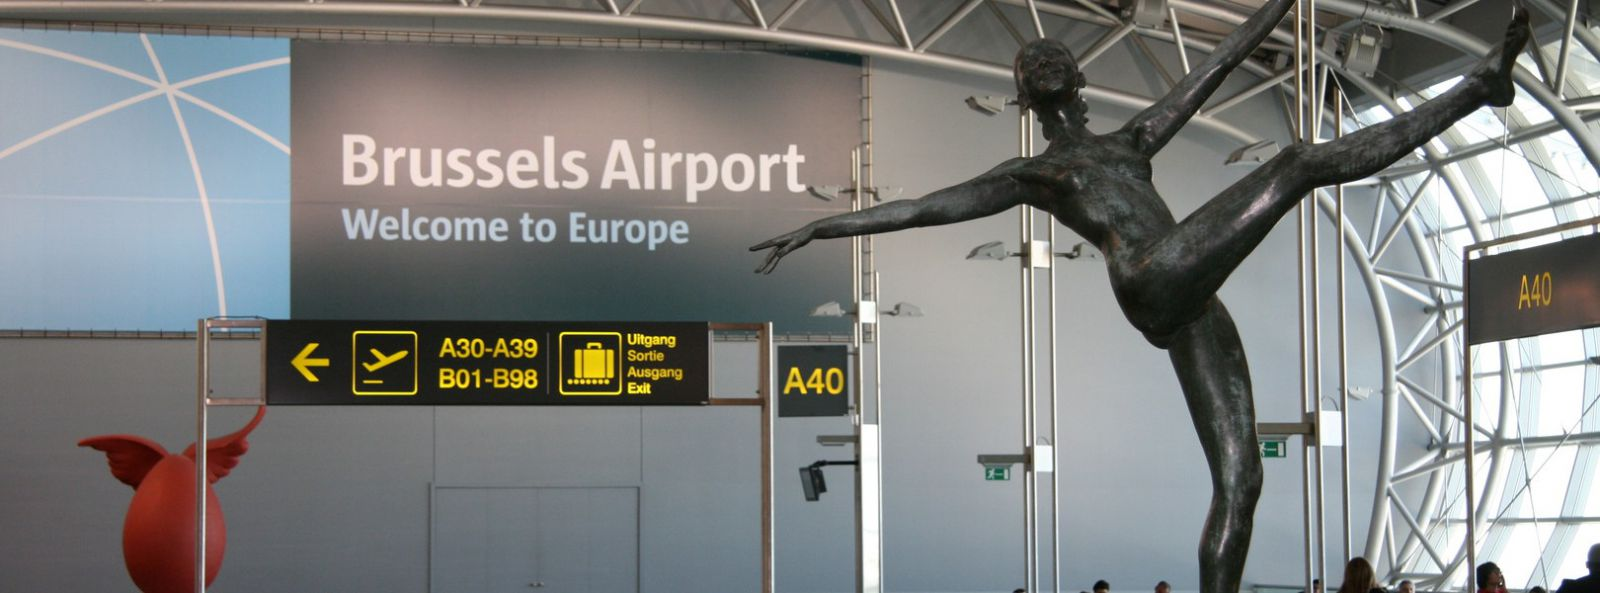 brussels airport taxi transfers and shuttle service